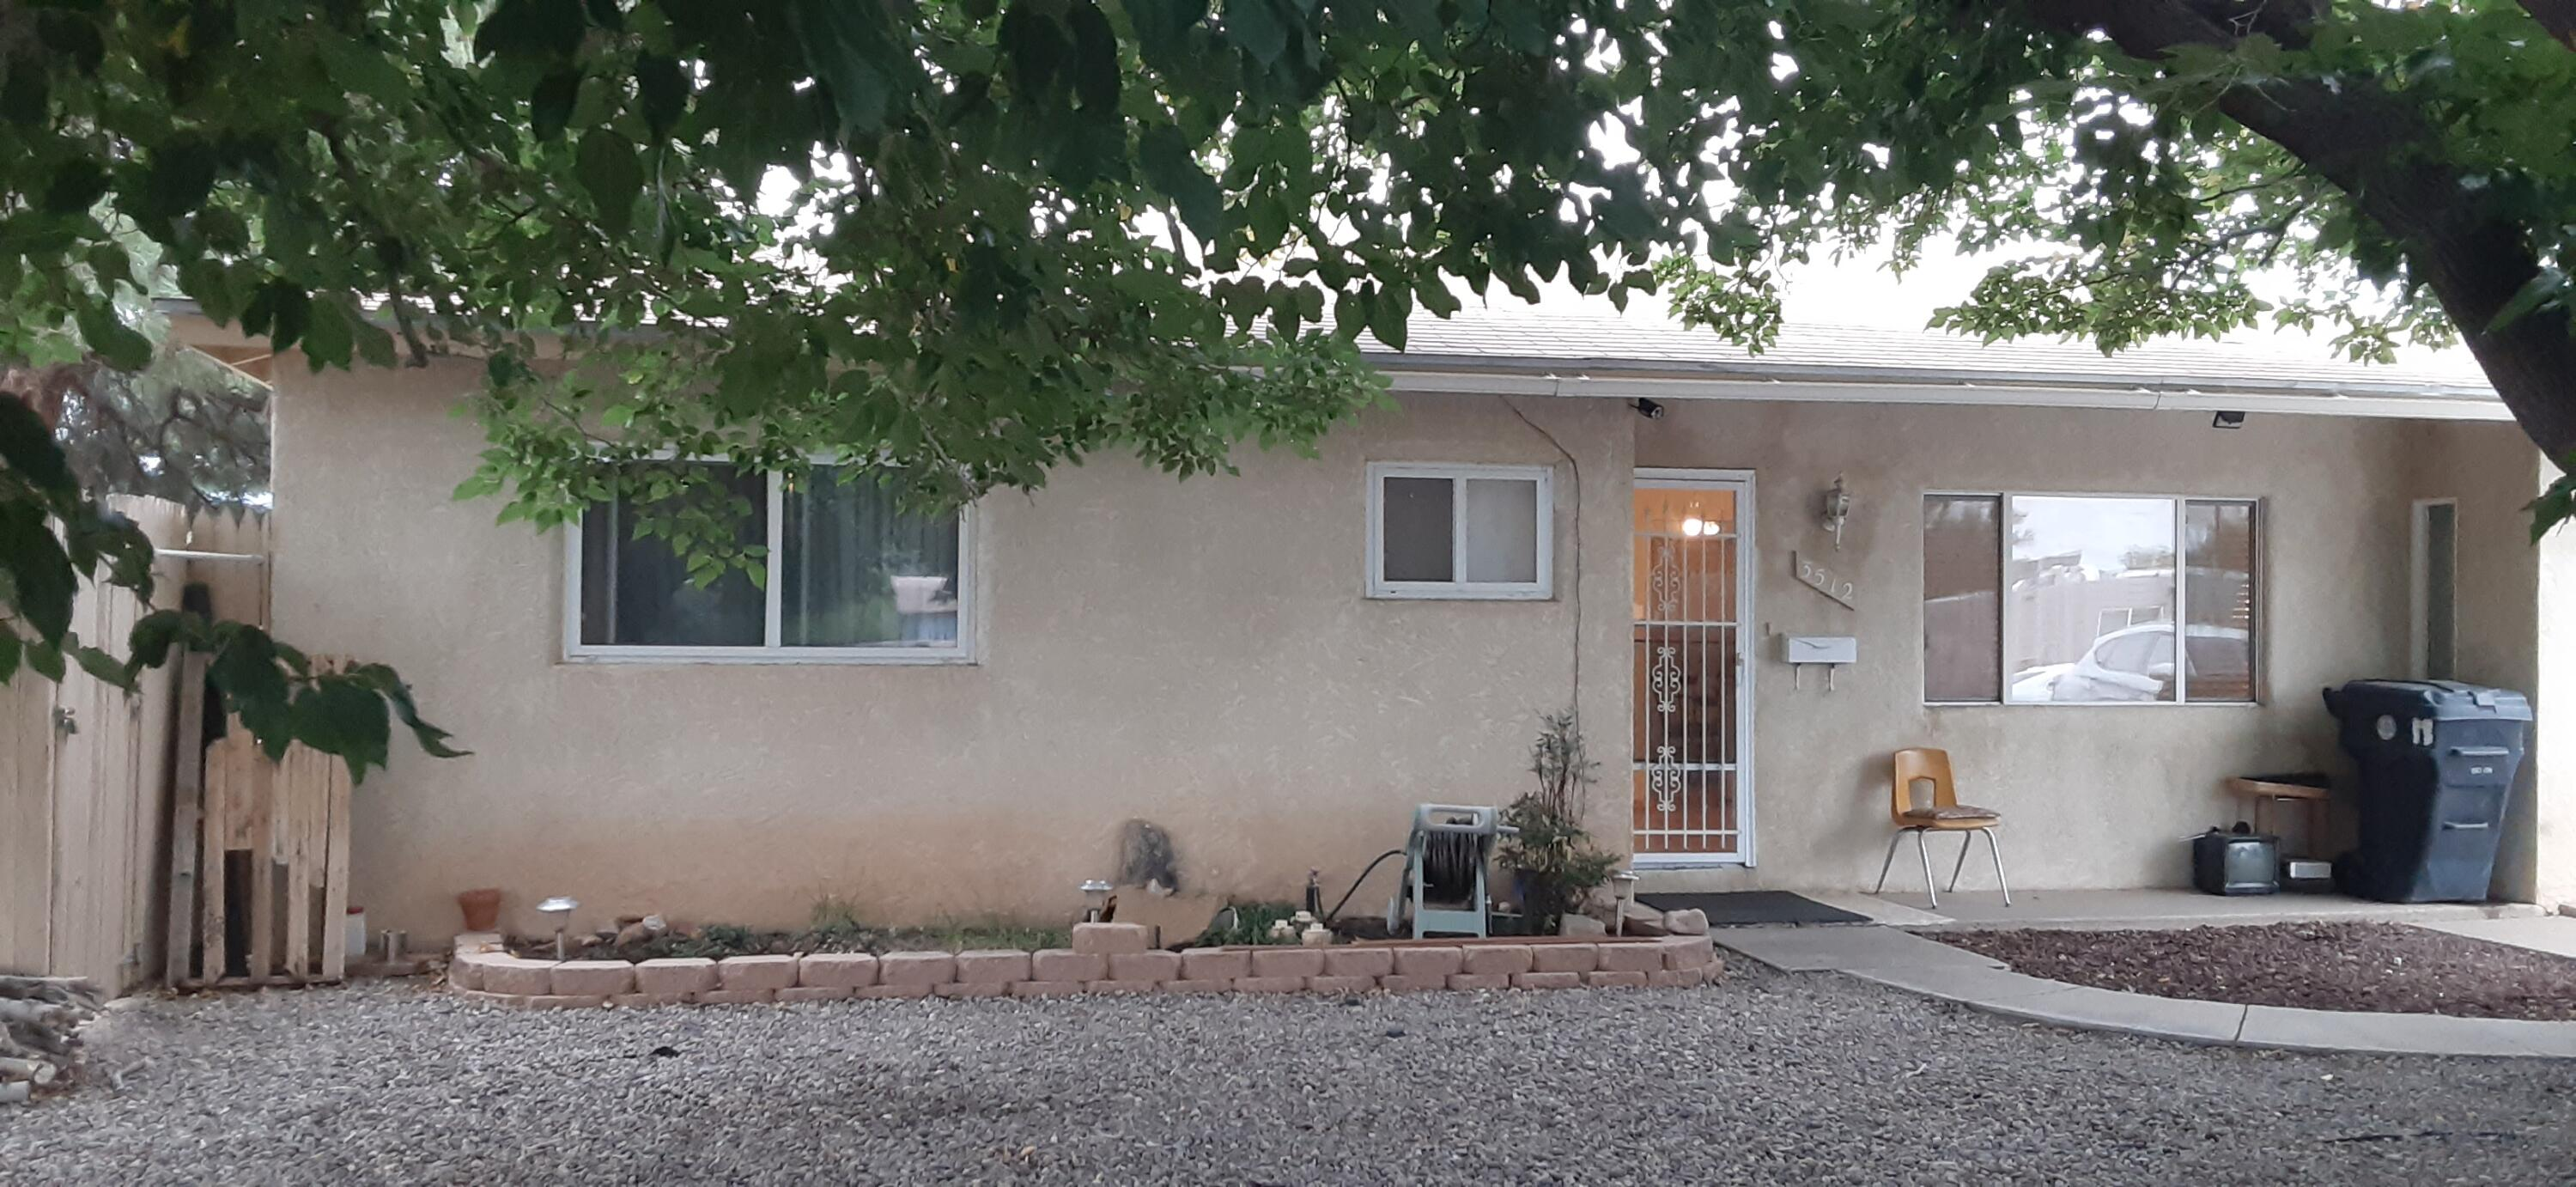 Nice 3 bedroom, 1 bath home on a large corner lot.  Well kept and ready for a new owner.  Hardwood flooring, vinyl windows.  Washer/dryer stays.Close to Grisham park.